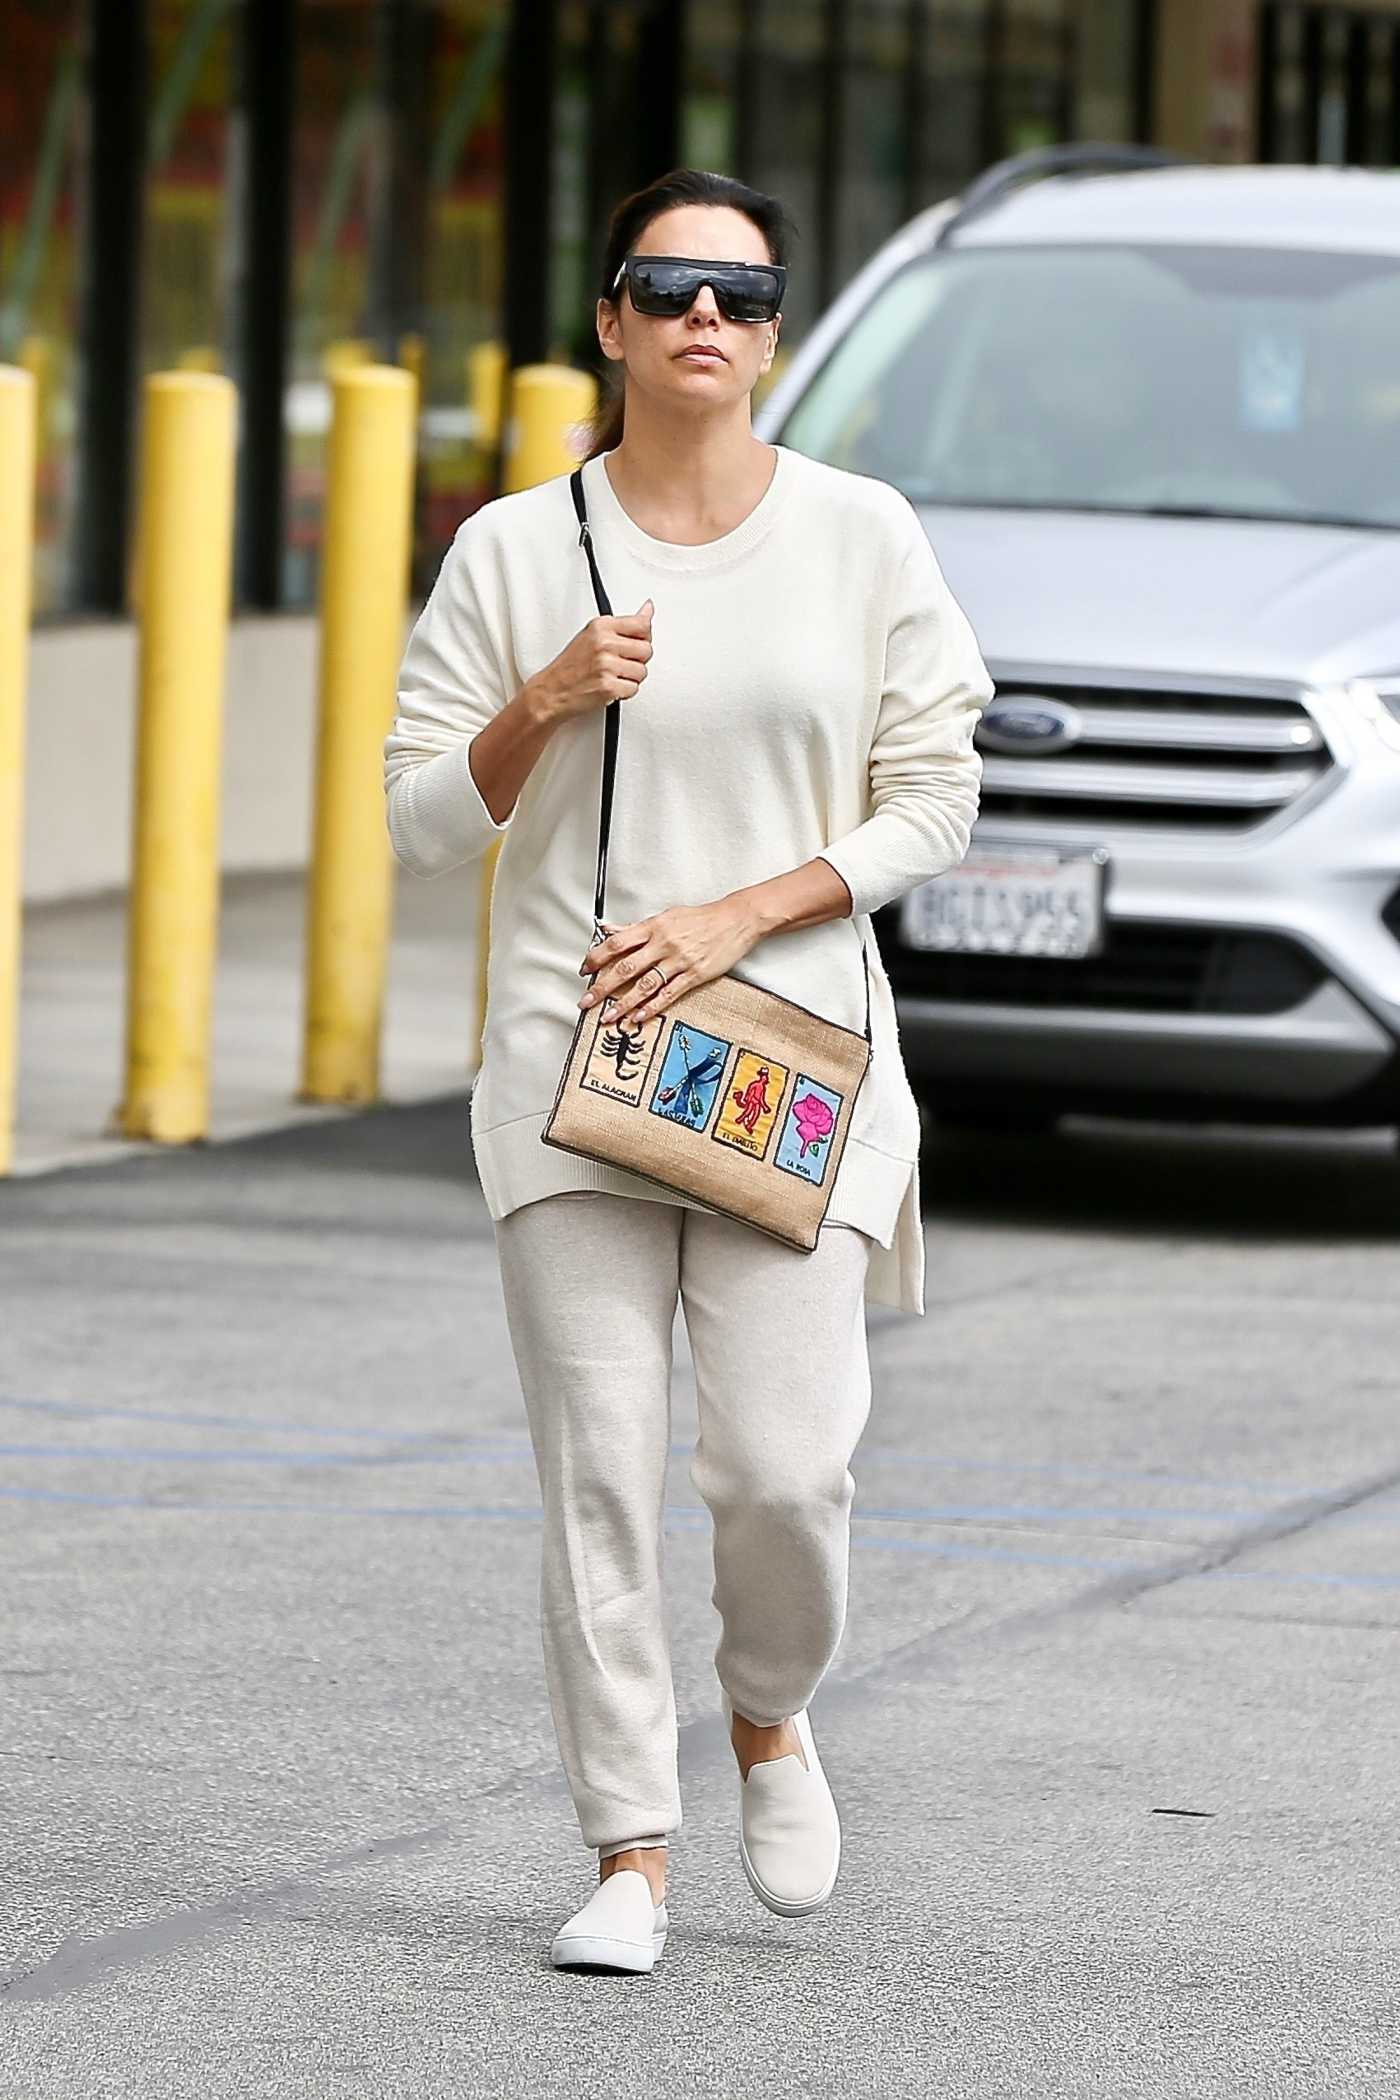 Eva Longoria in a Beige Sweatpants Goes Shopping at Joann Fabrics and Crafts in Sherman Oaks 03/14/2020